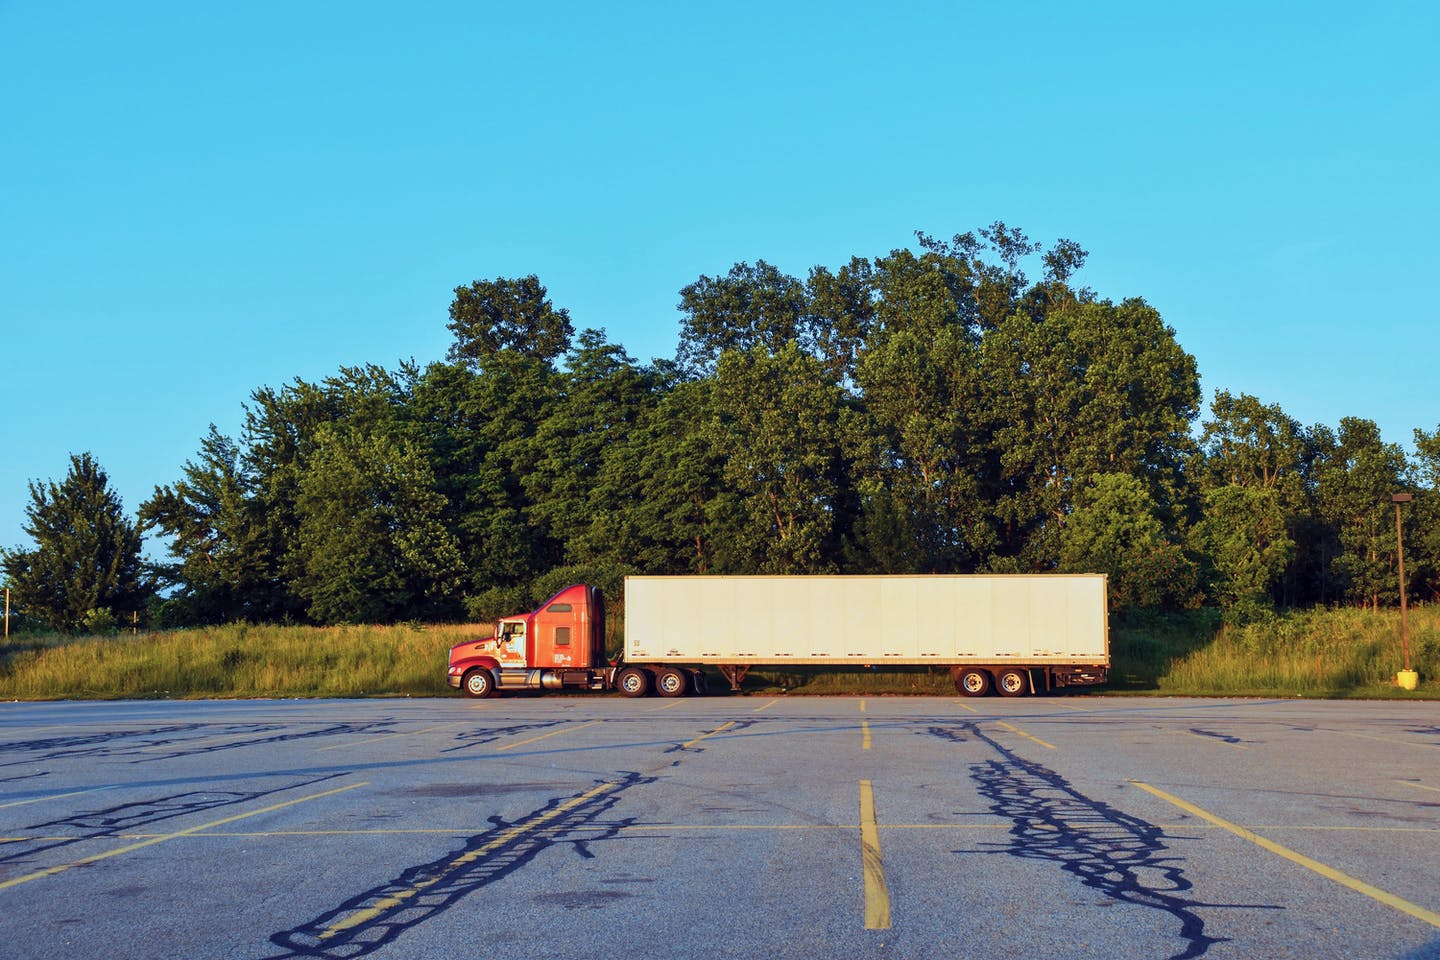 A freight truck sits in a parking lot.